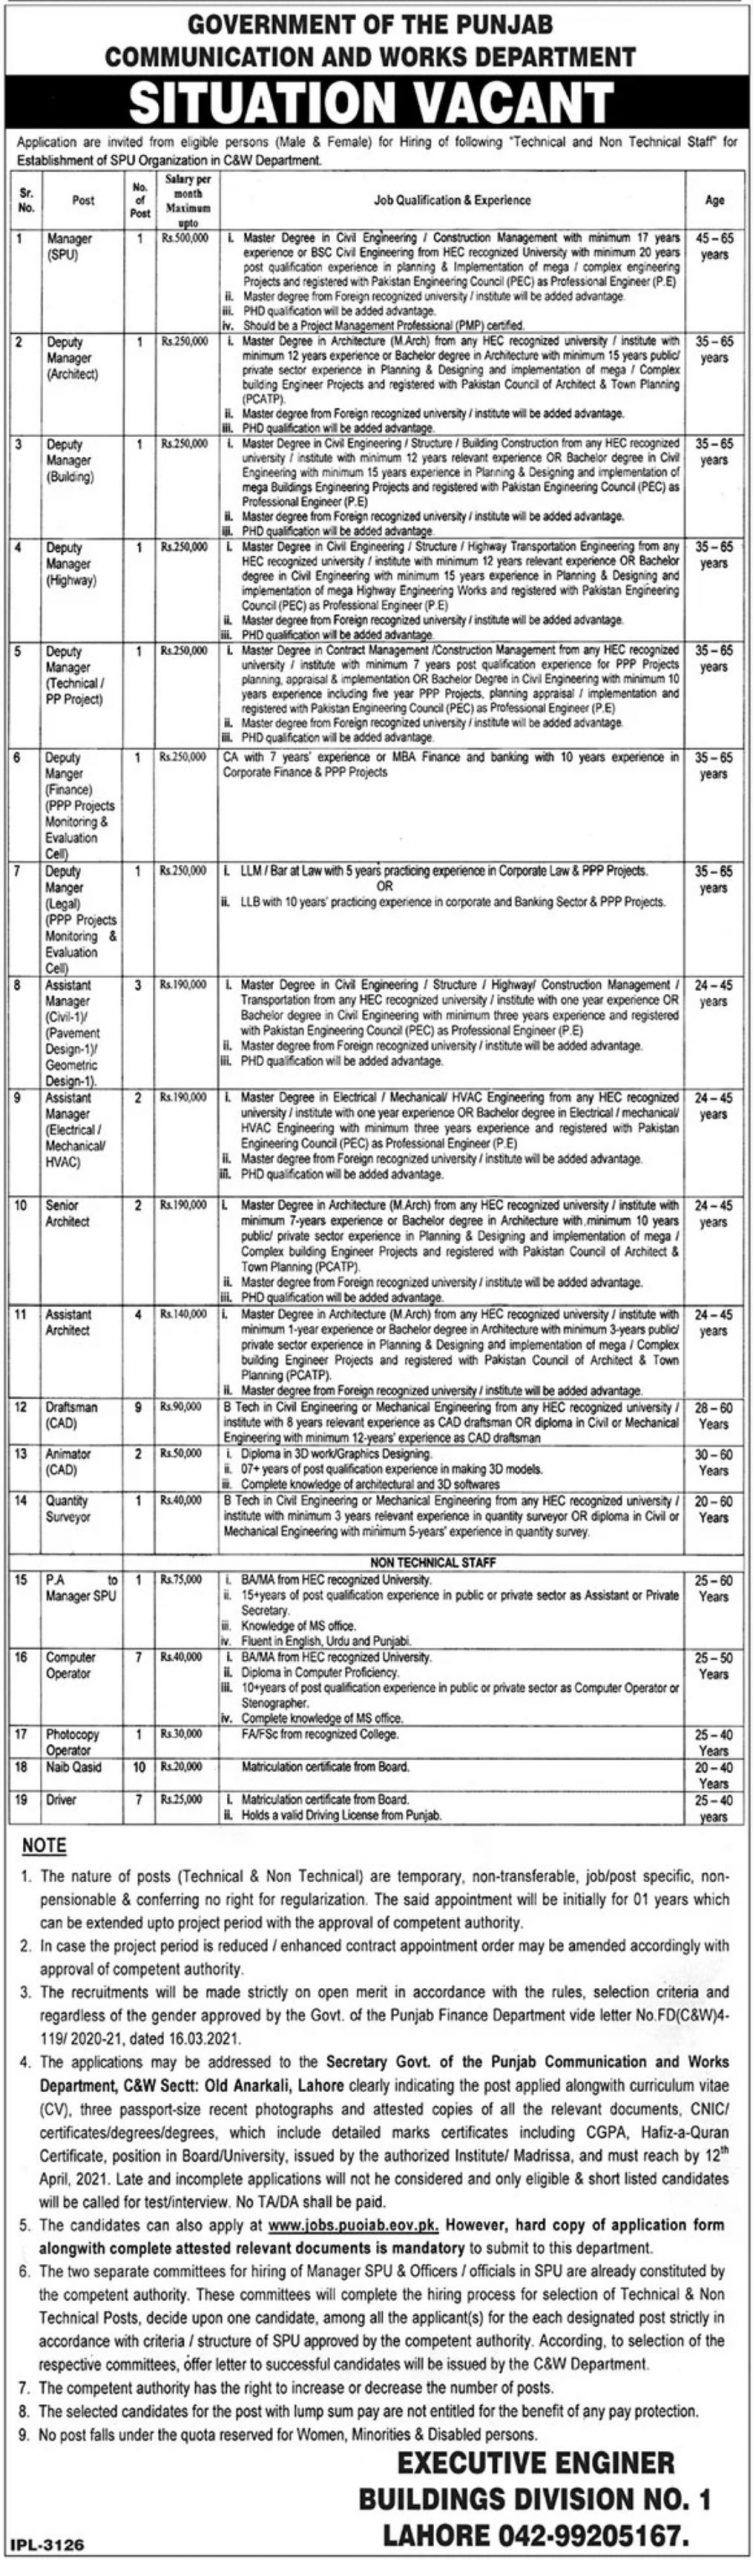 Government of the Punjab Communication and Works Department Jobs April 2021